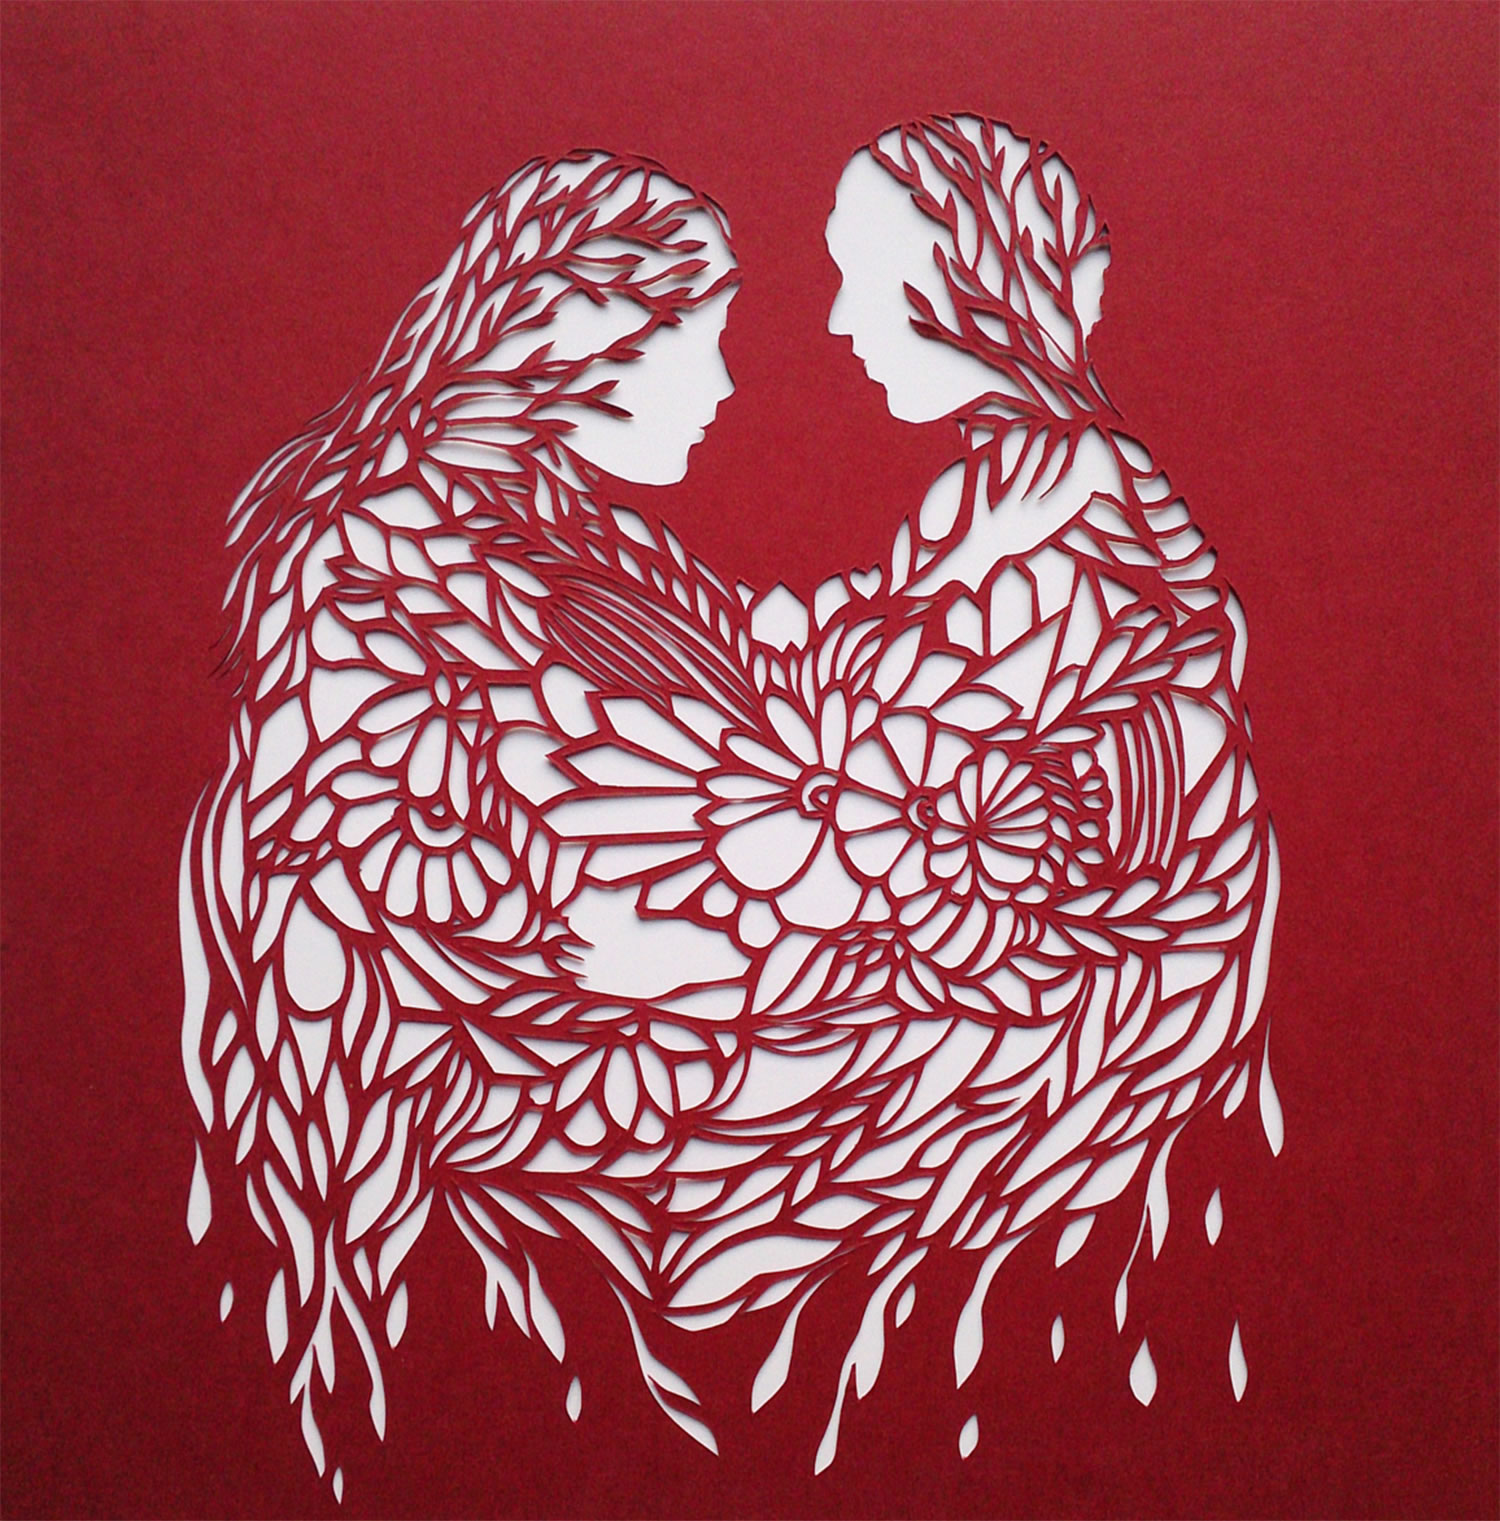 oozing love, red paper cutout